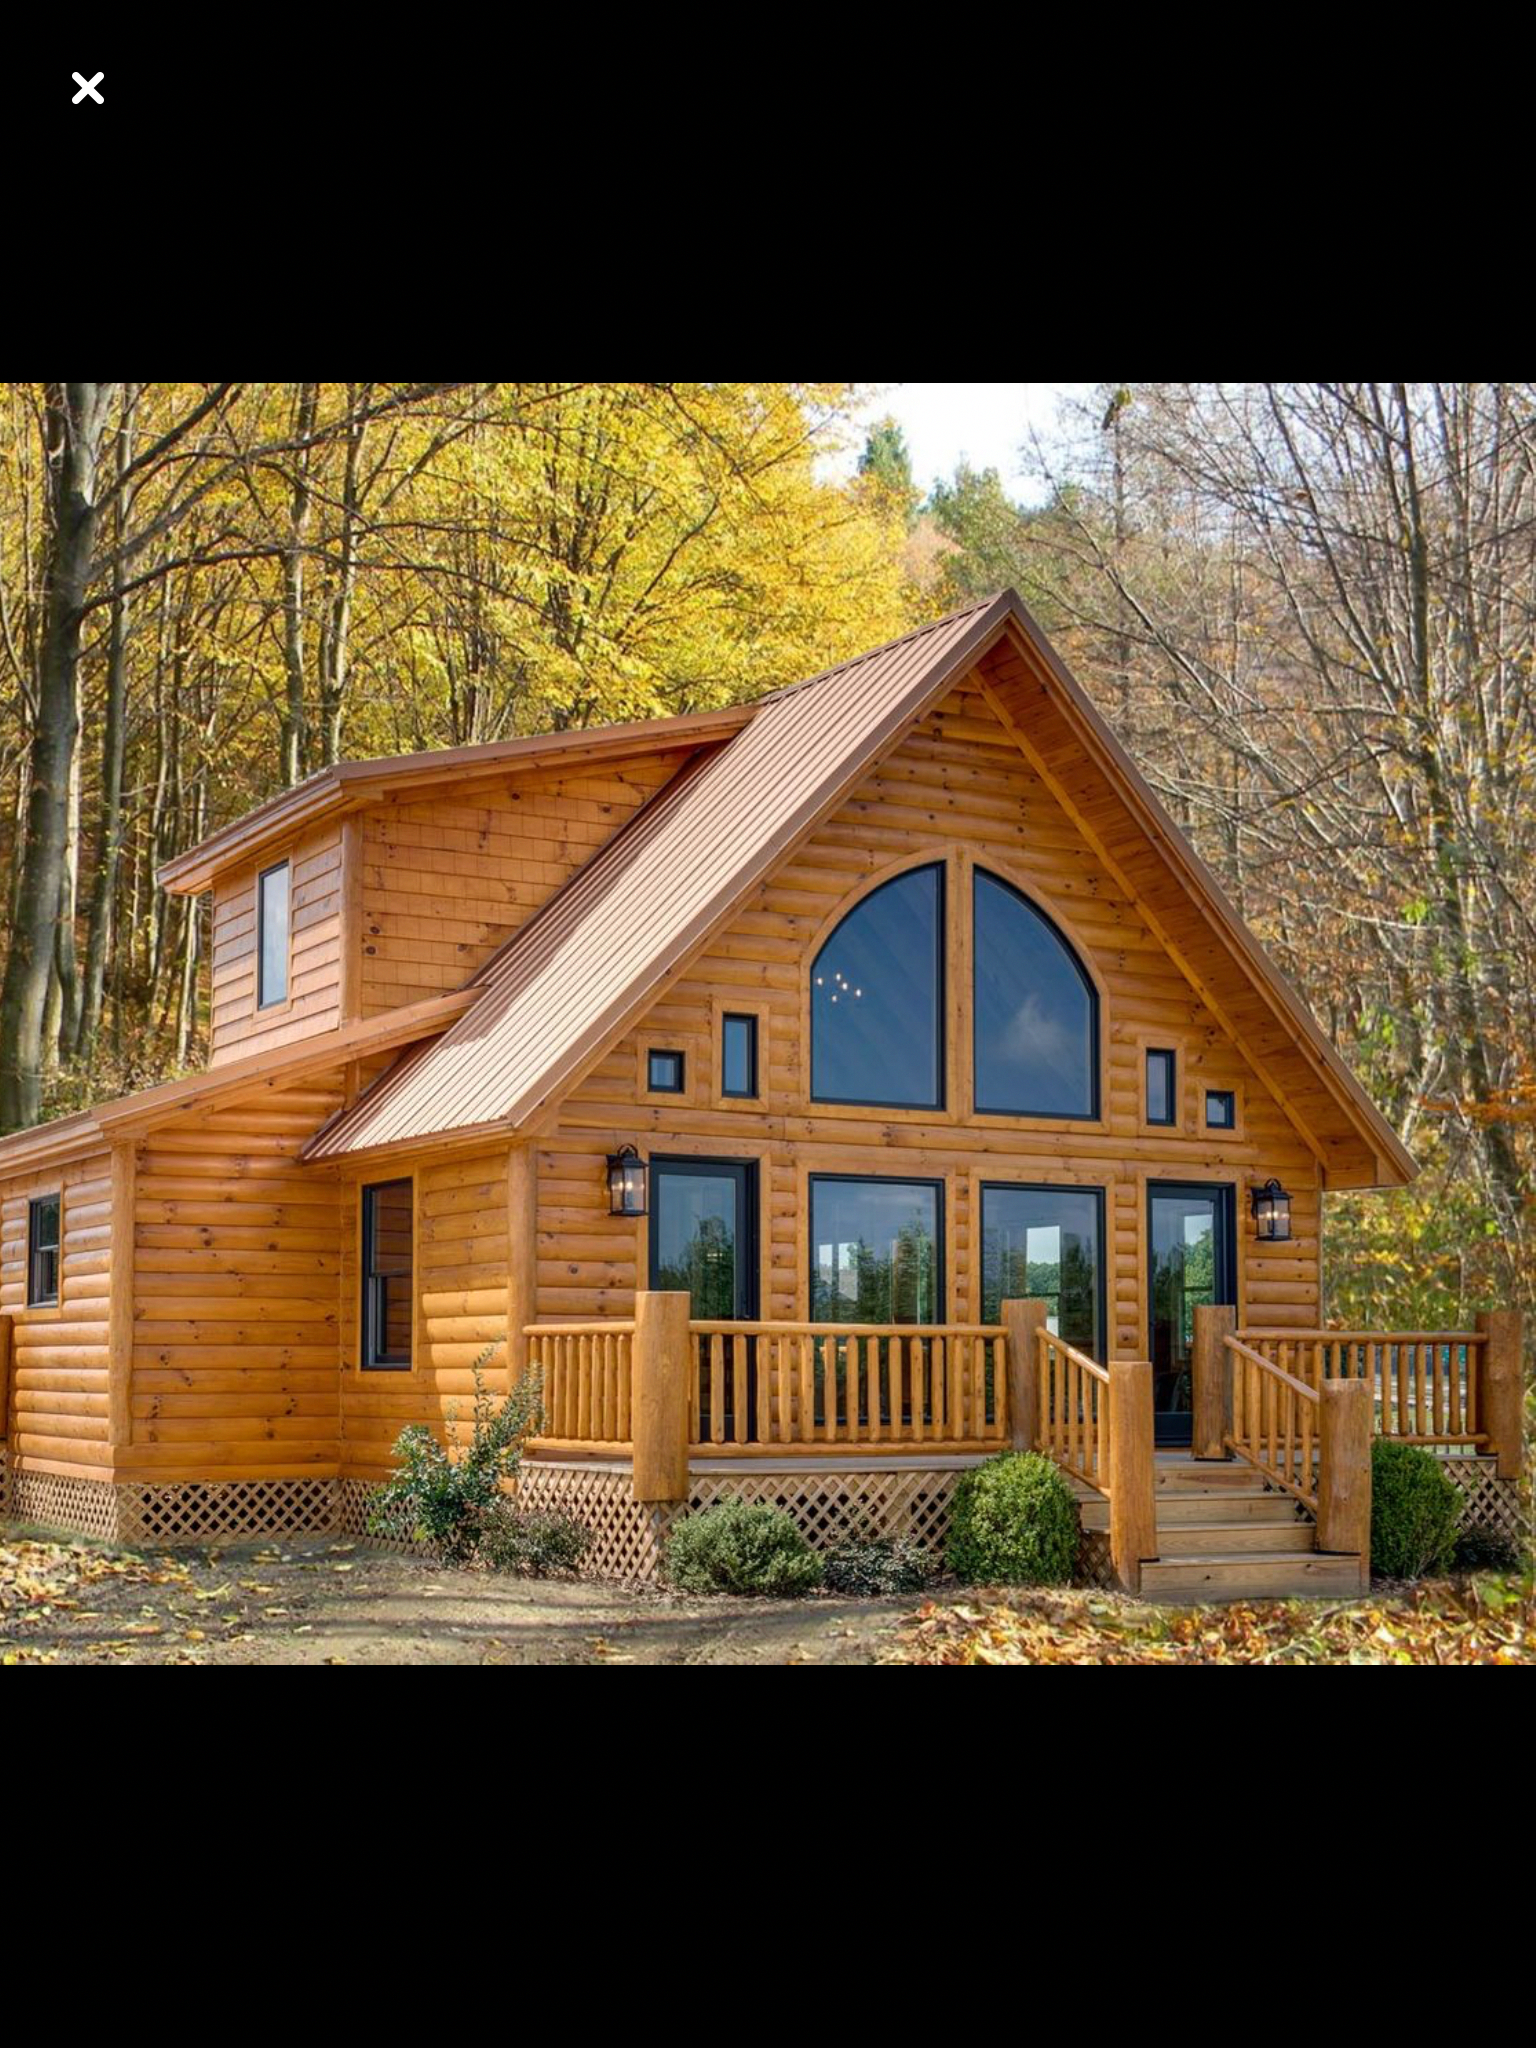 Log Home Decorating A Lovely Yet Appealing Collection On Tips For More Charming Info Press The Link To Read The Post Mimari Hayallerinizdeki Ev Ev Mimarisi